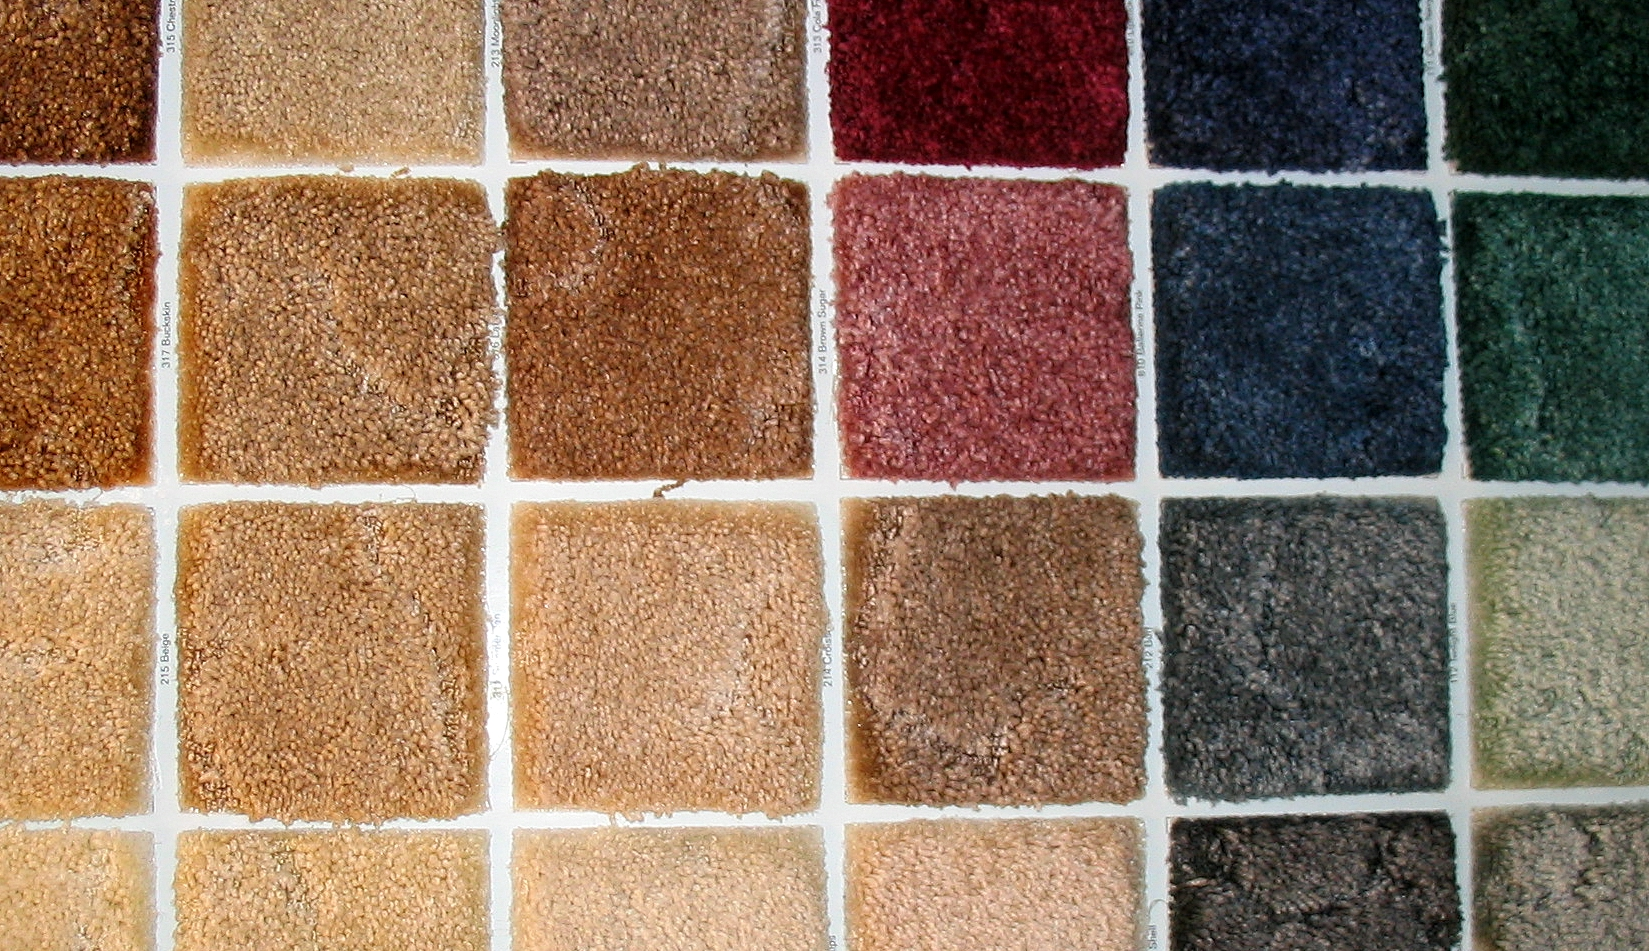 Swatches_of_carpet_